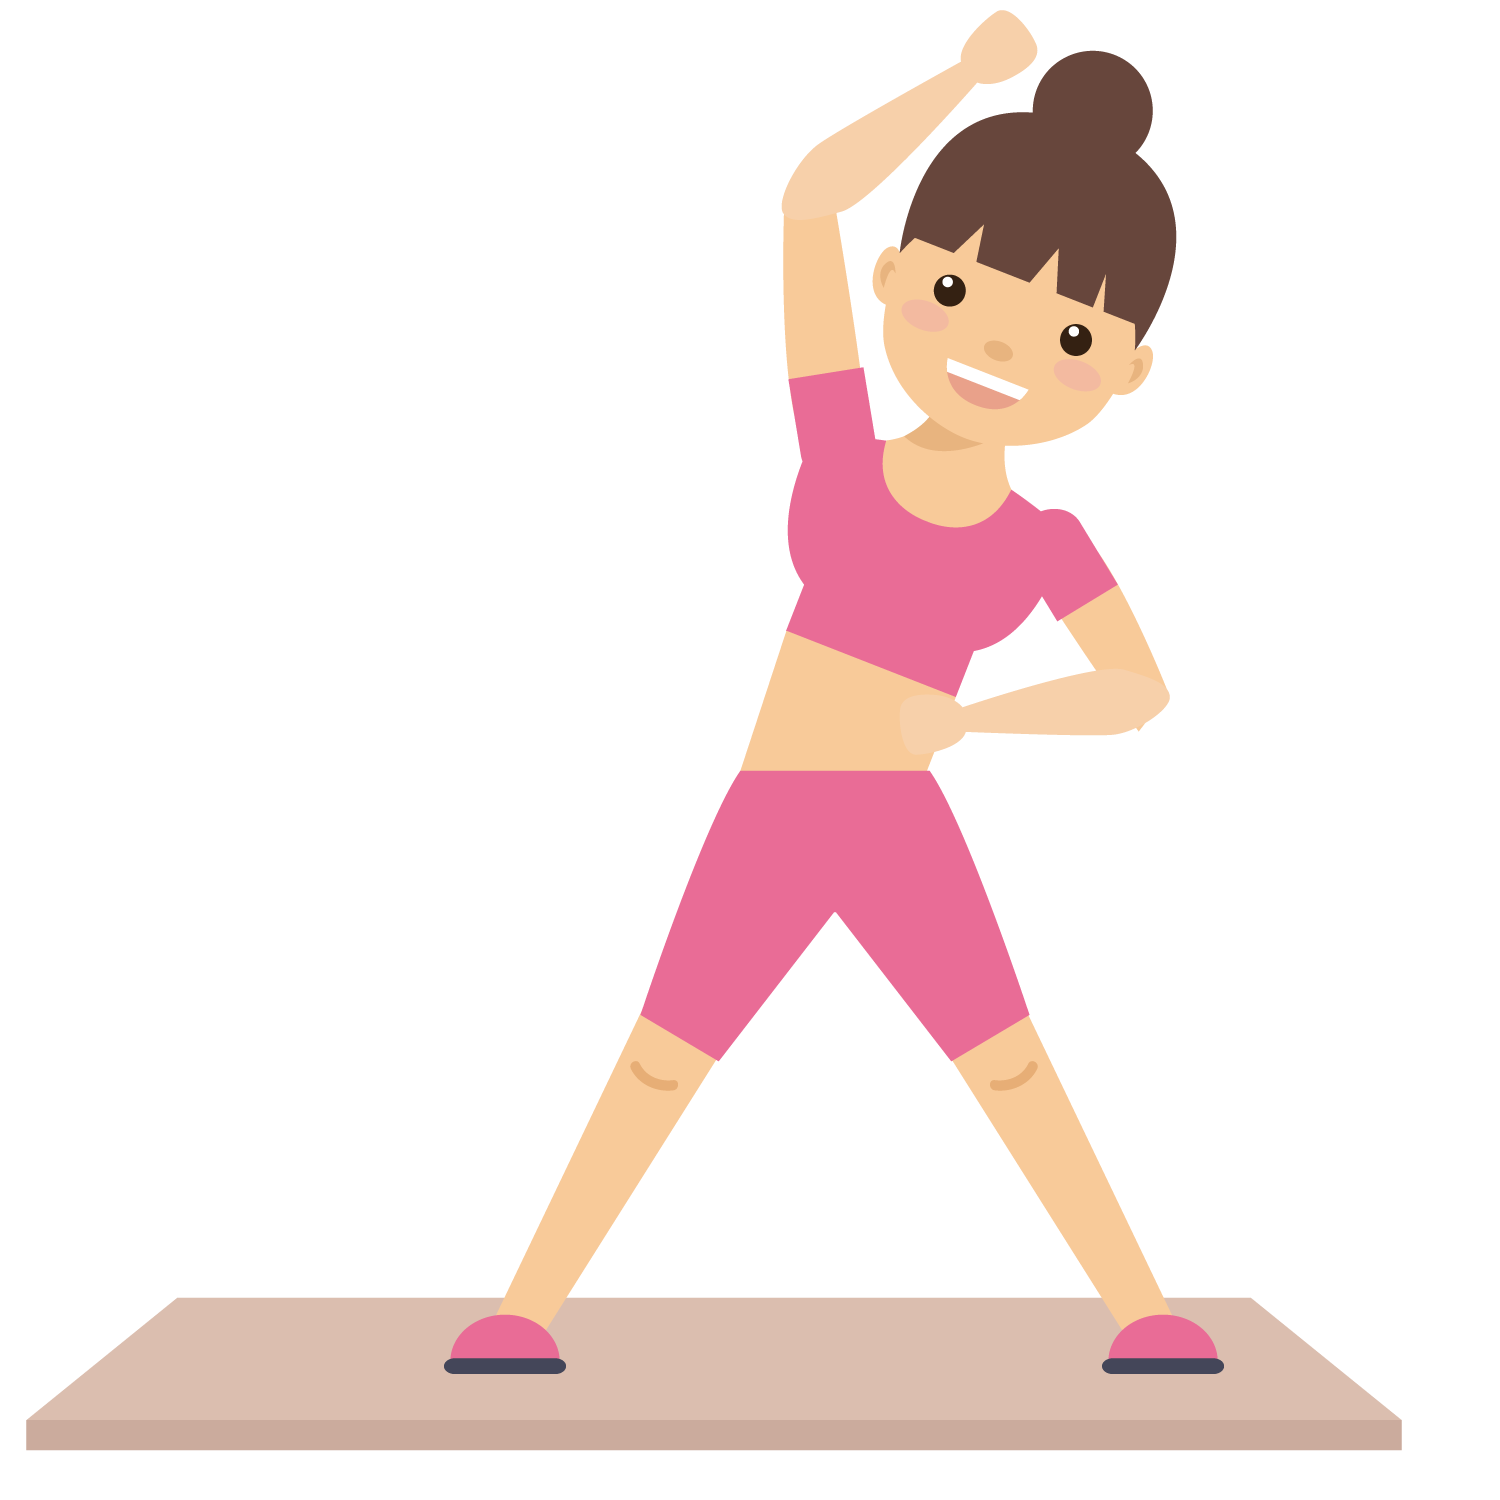 Physical fitness clip art. Clipart exercise girl exercise